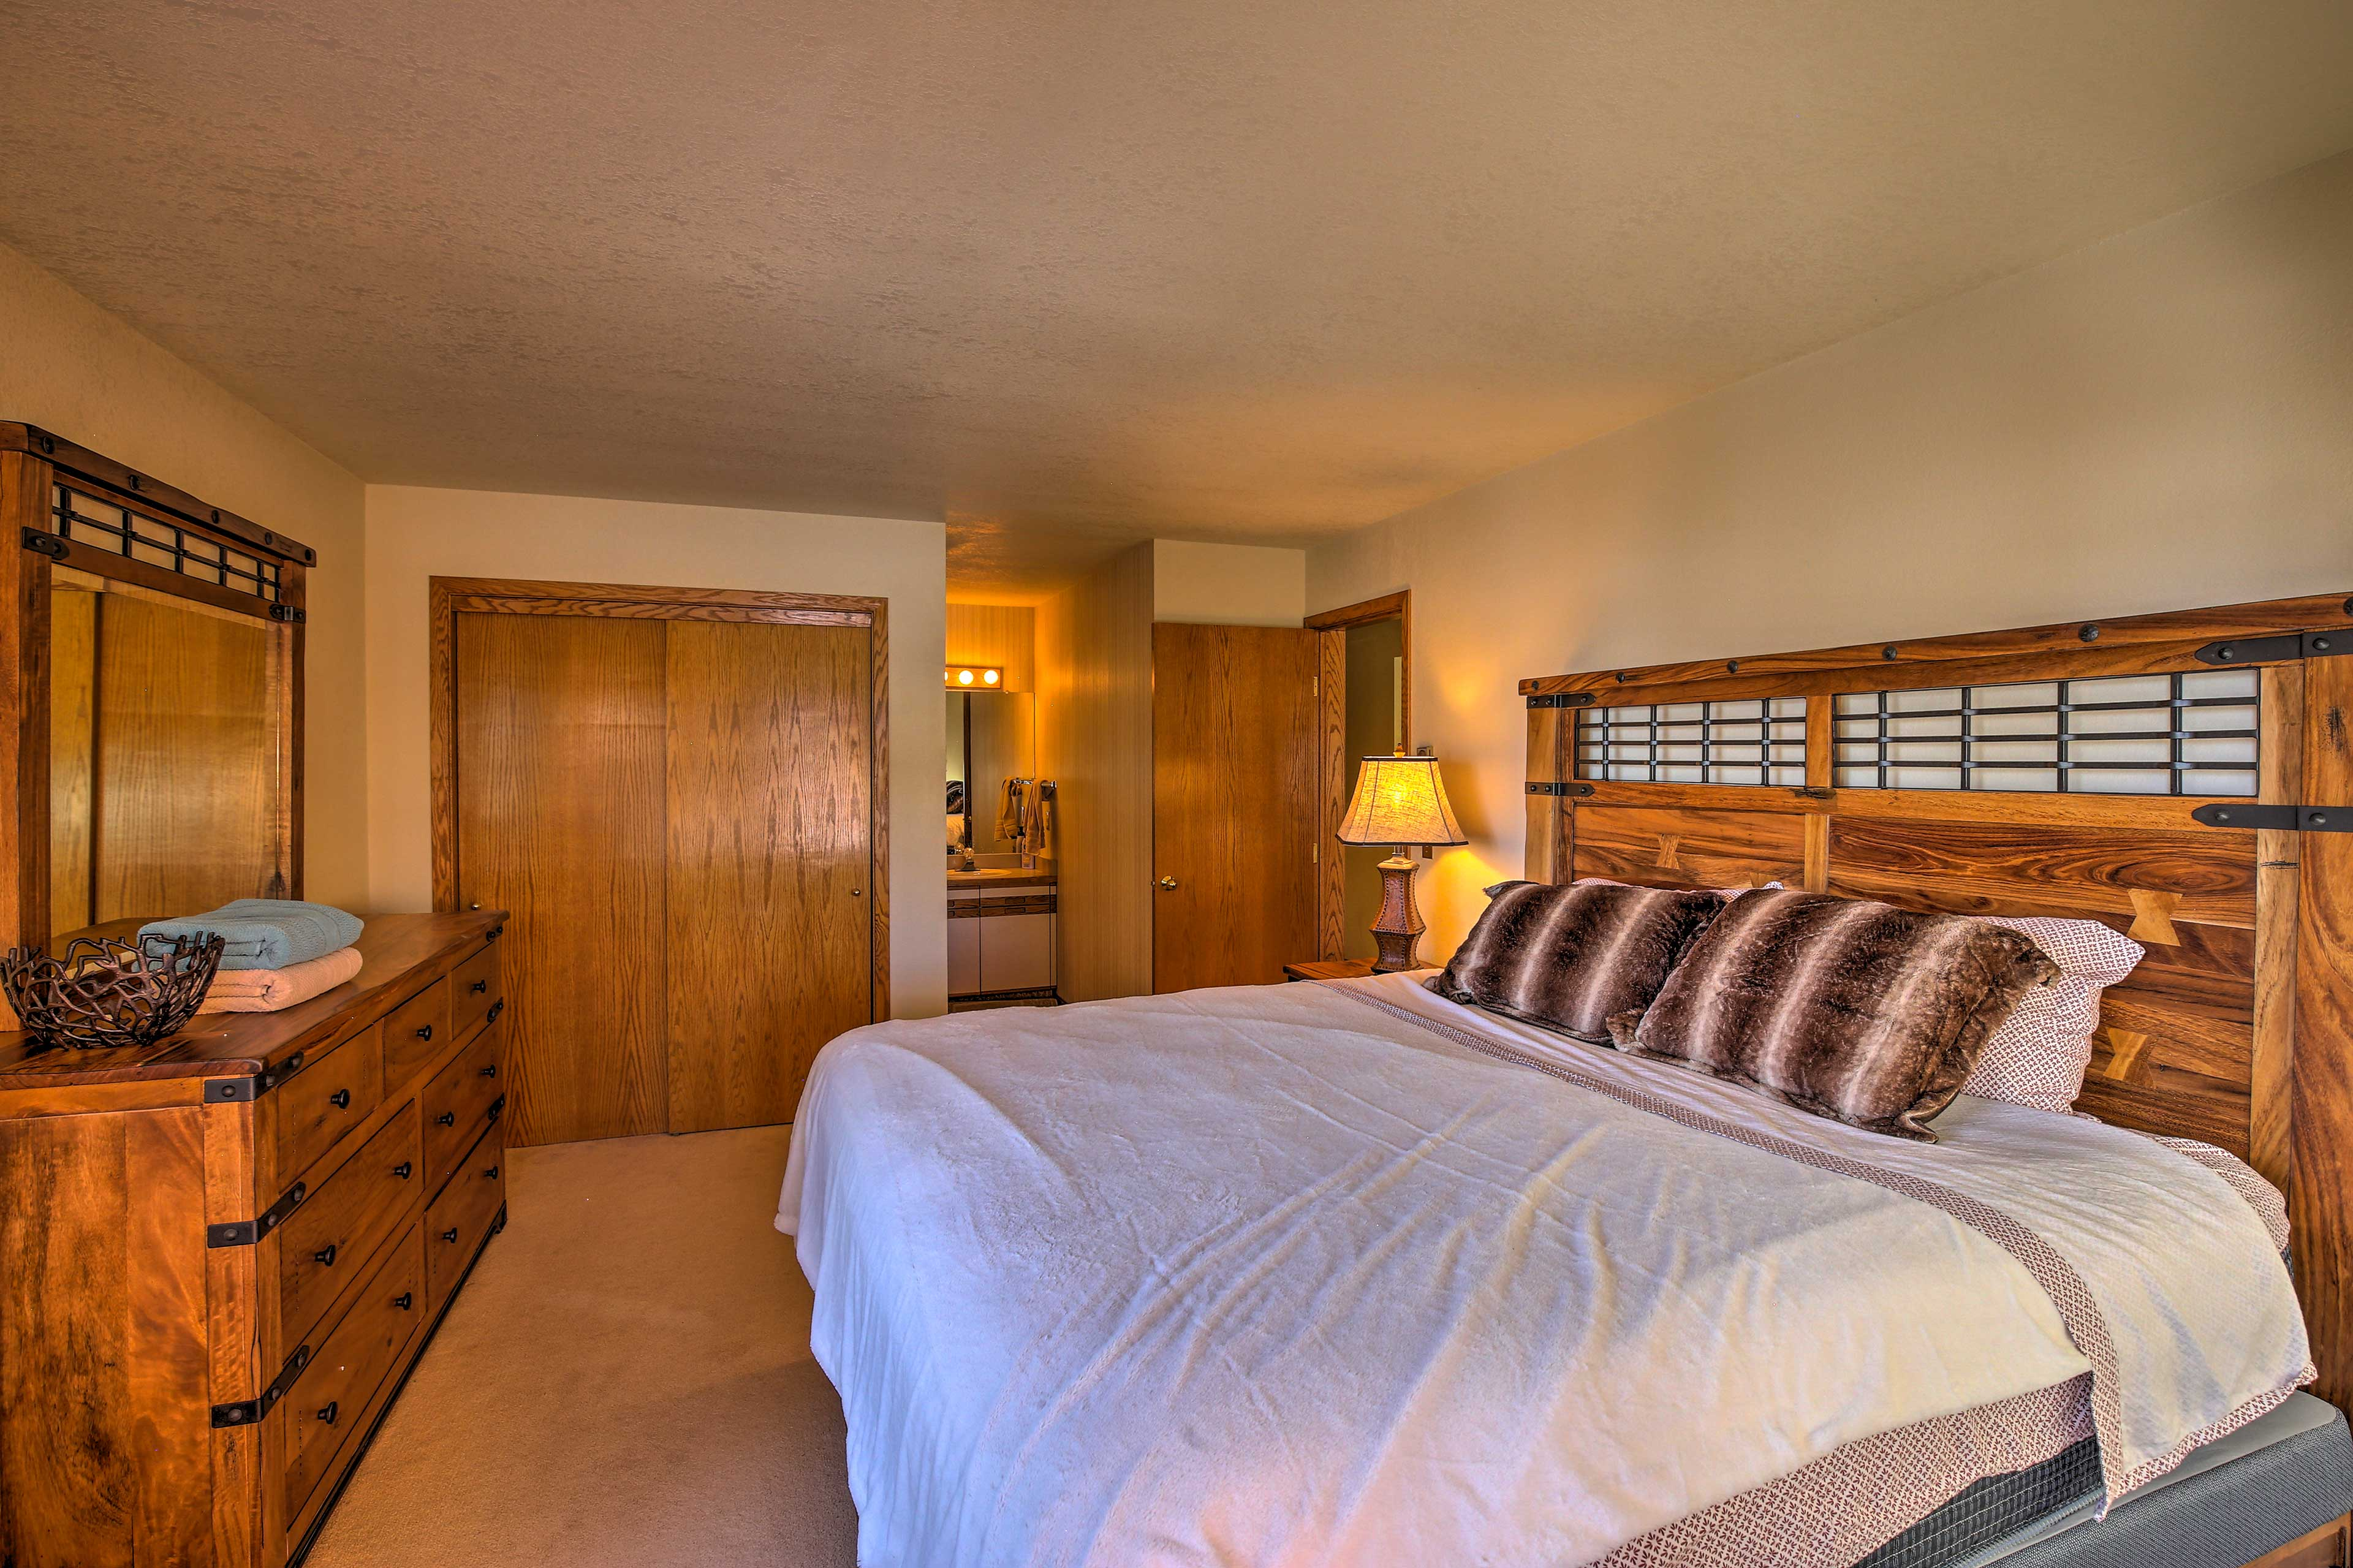 The master bedroom offers a plush king bed.